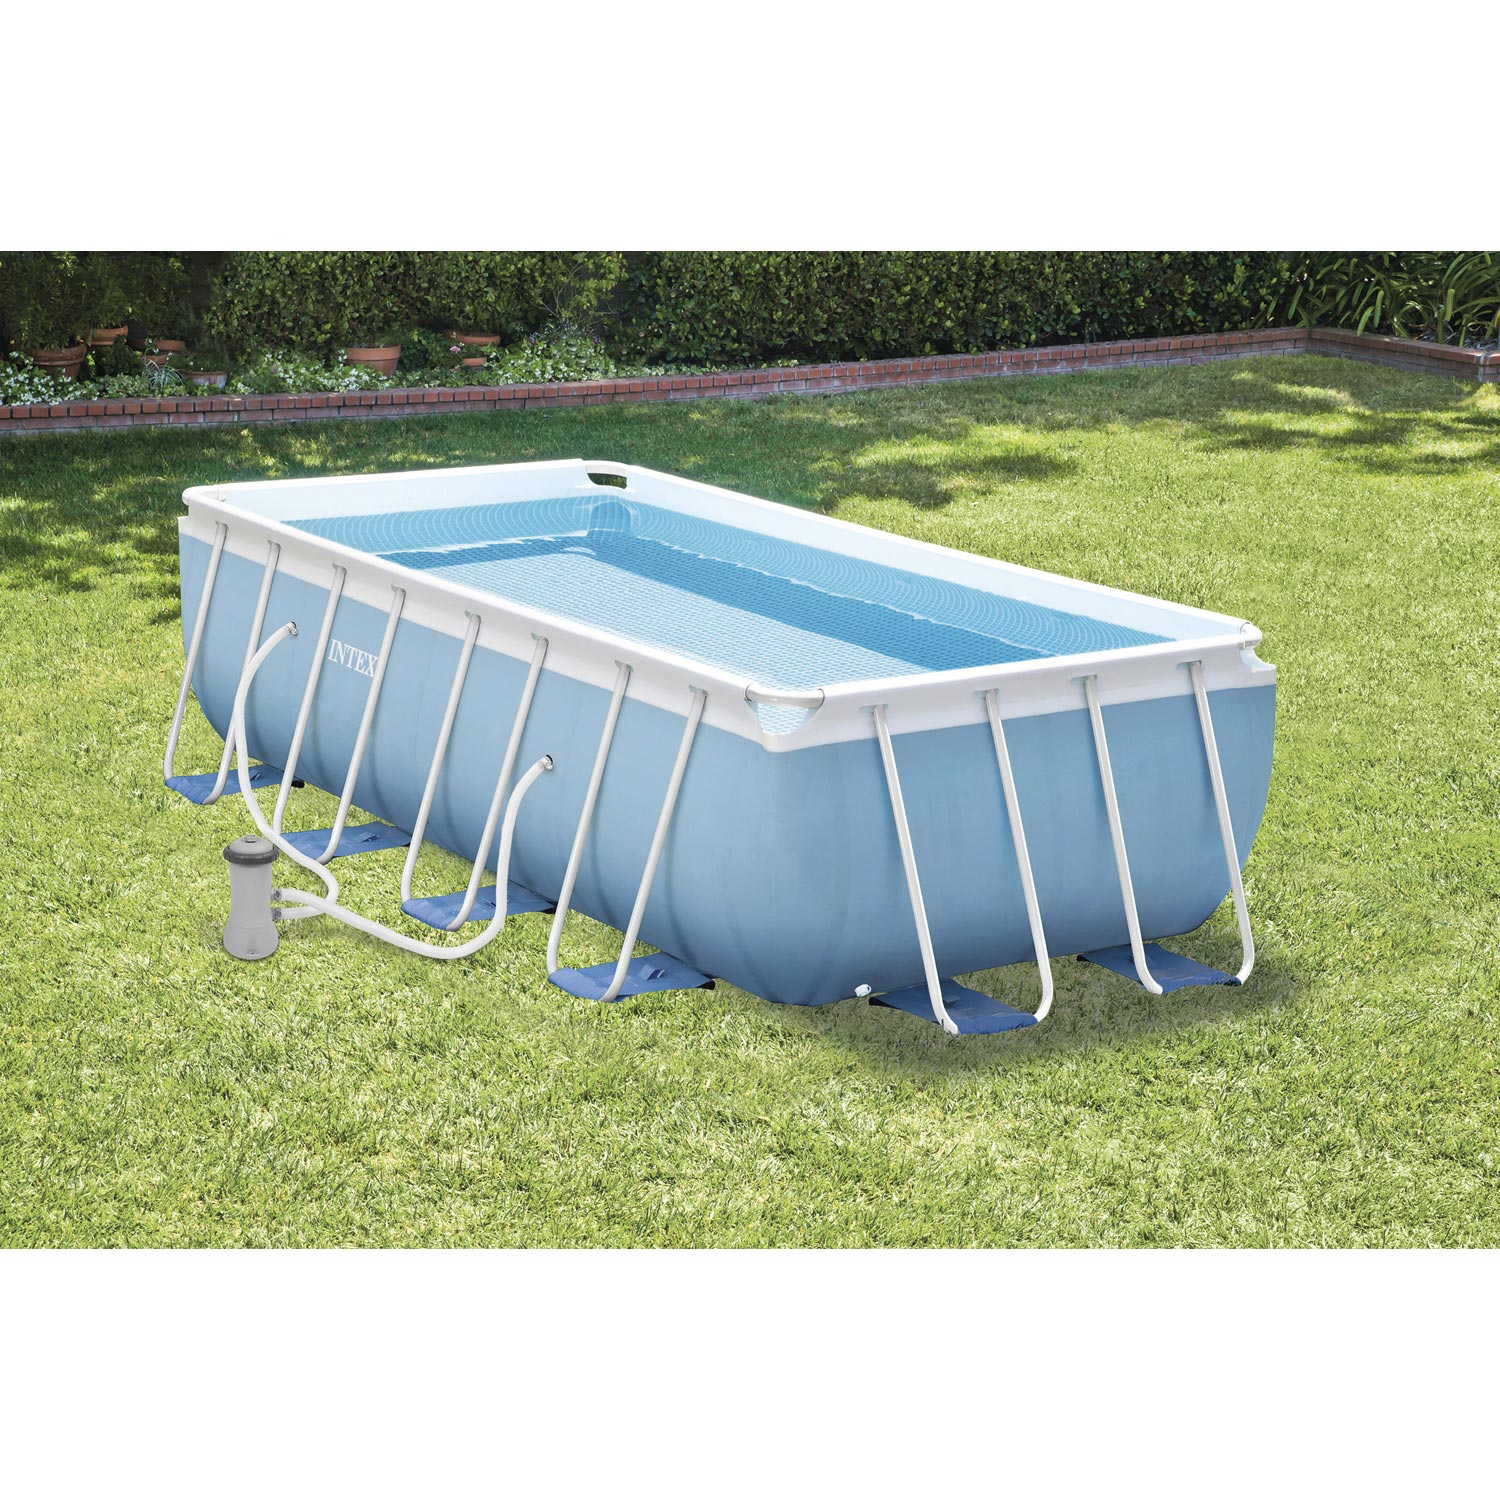 Piscine hors sol autoportante tubulaire prism frame intex for Piscine urbaine leroy merlin